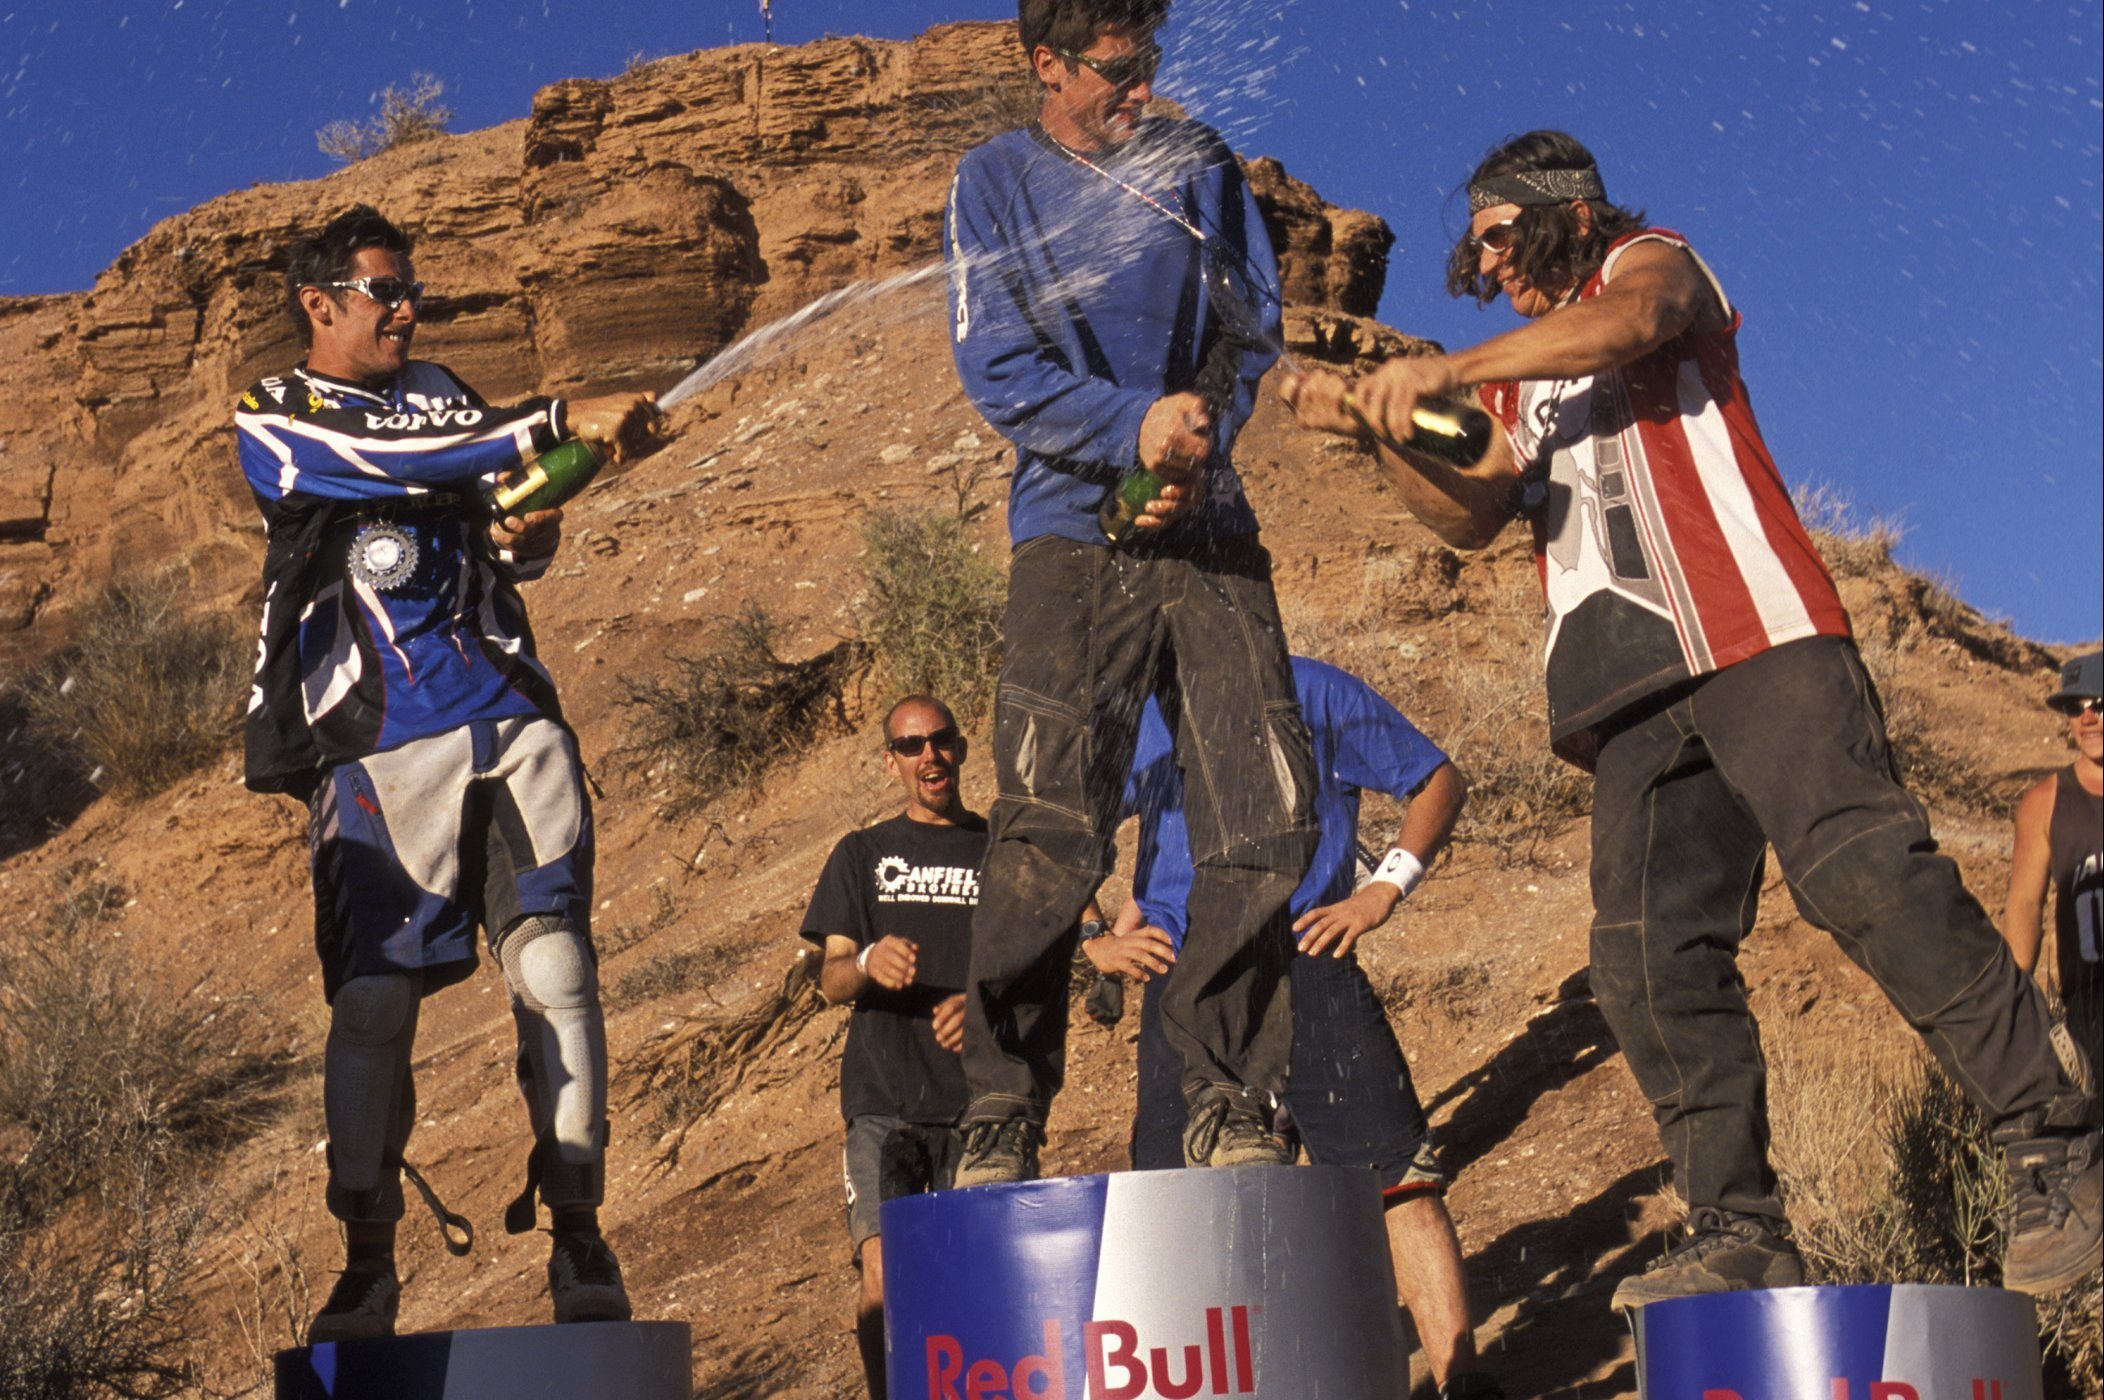 2001-2003 Red Bull Rampage: no tricks, just trying to stay on the bike! - MBR